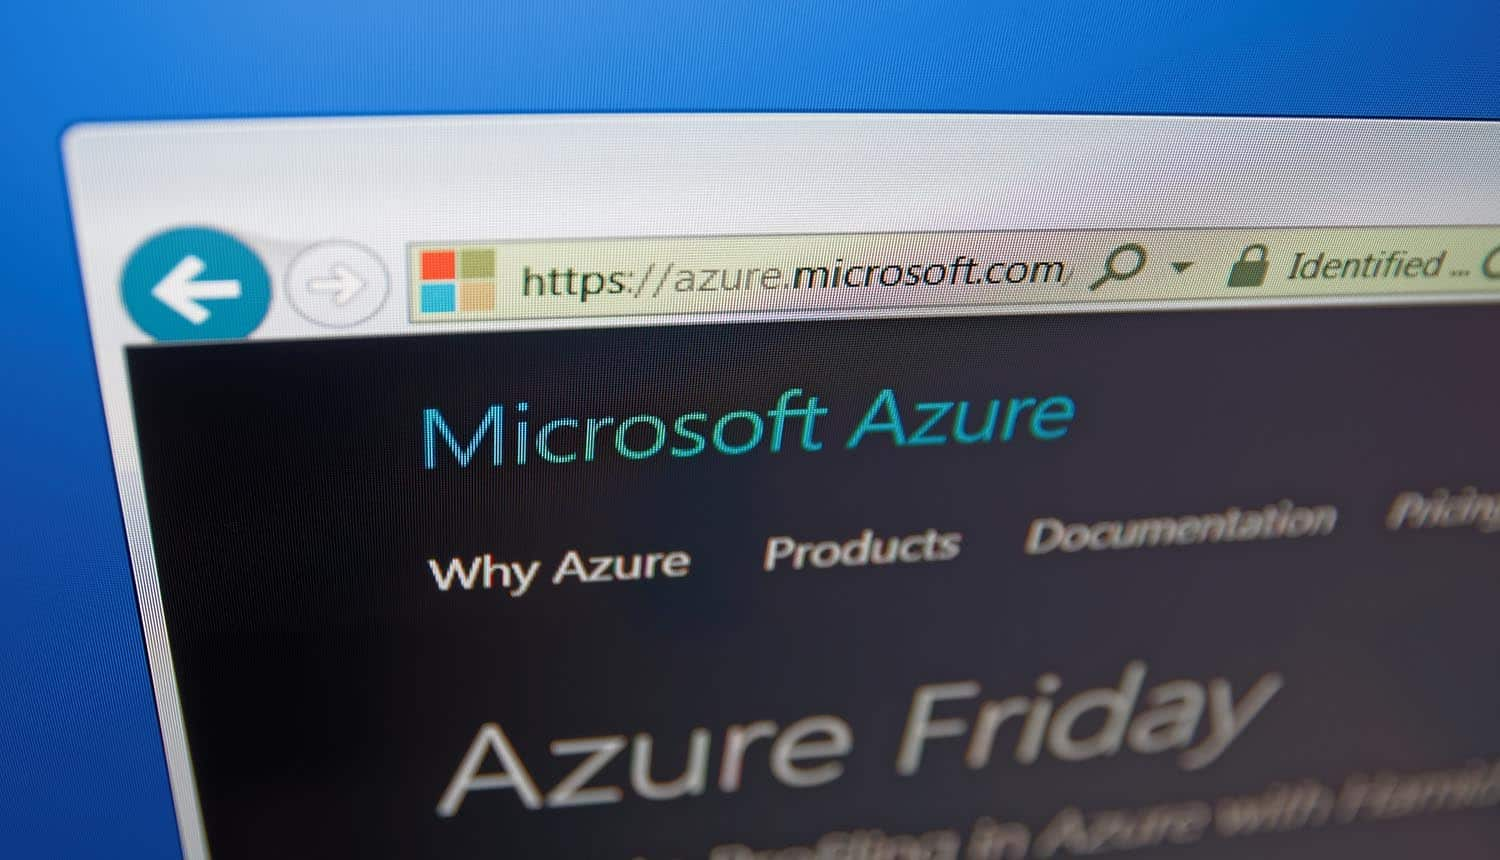 Computer screen shows details of Microsoft Azure main page showing active directory security